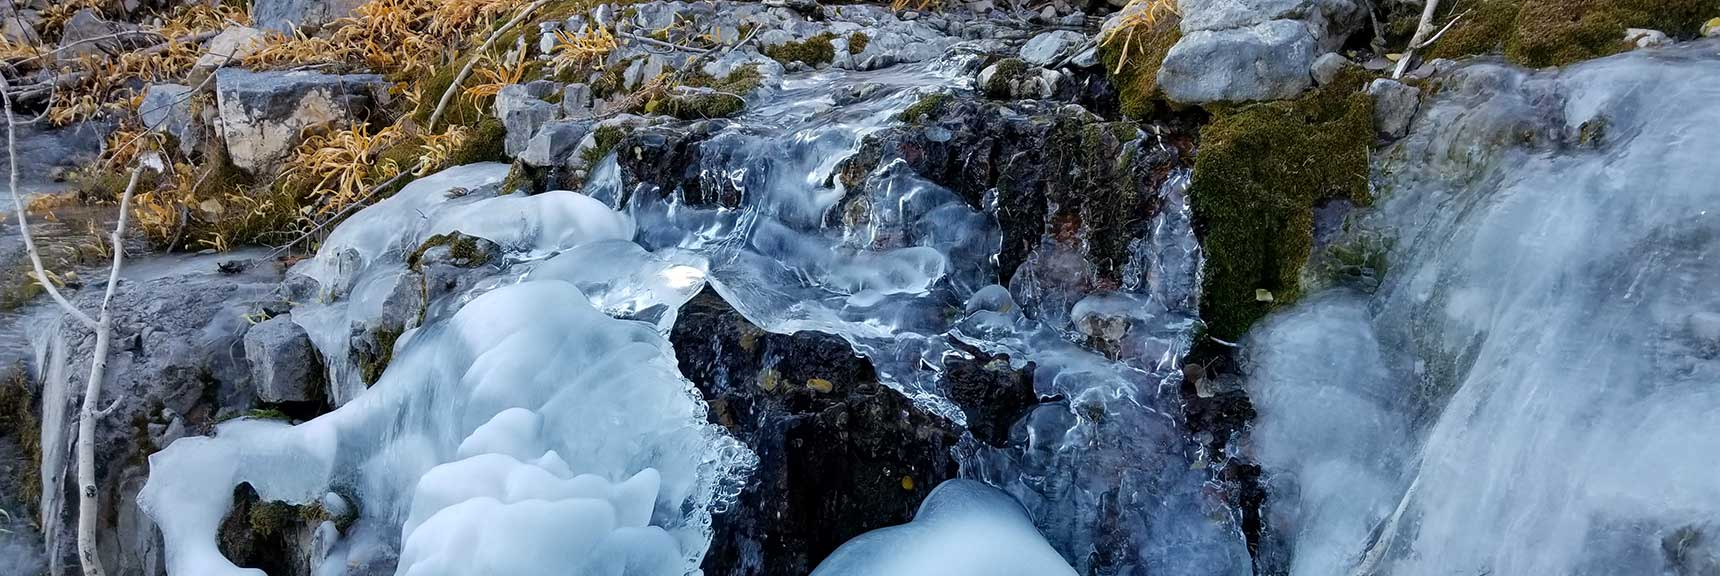 Frozen Mountain Stream and Ice Covered Rocks to Navigate In the Mountain Wash, Charleston Peak from Cathedral Rock, Spring Mountains, Nevada